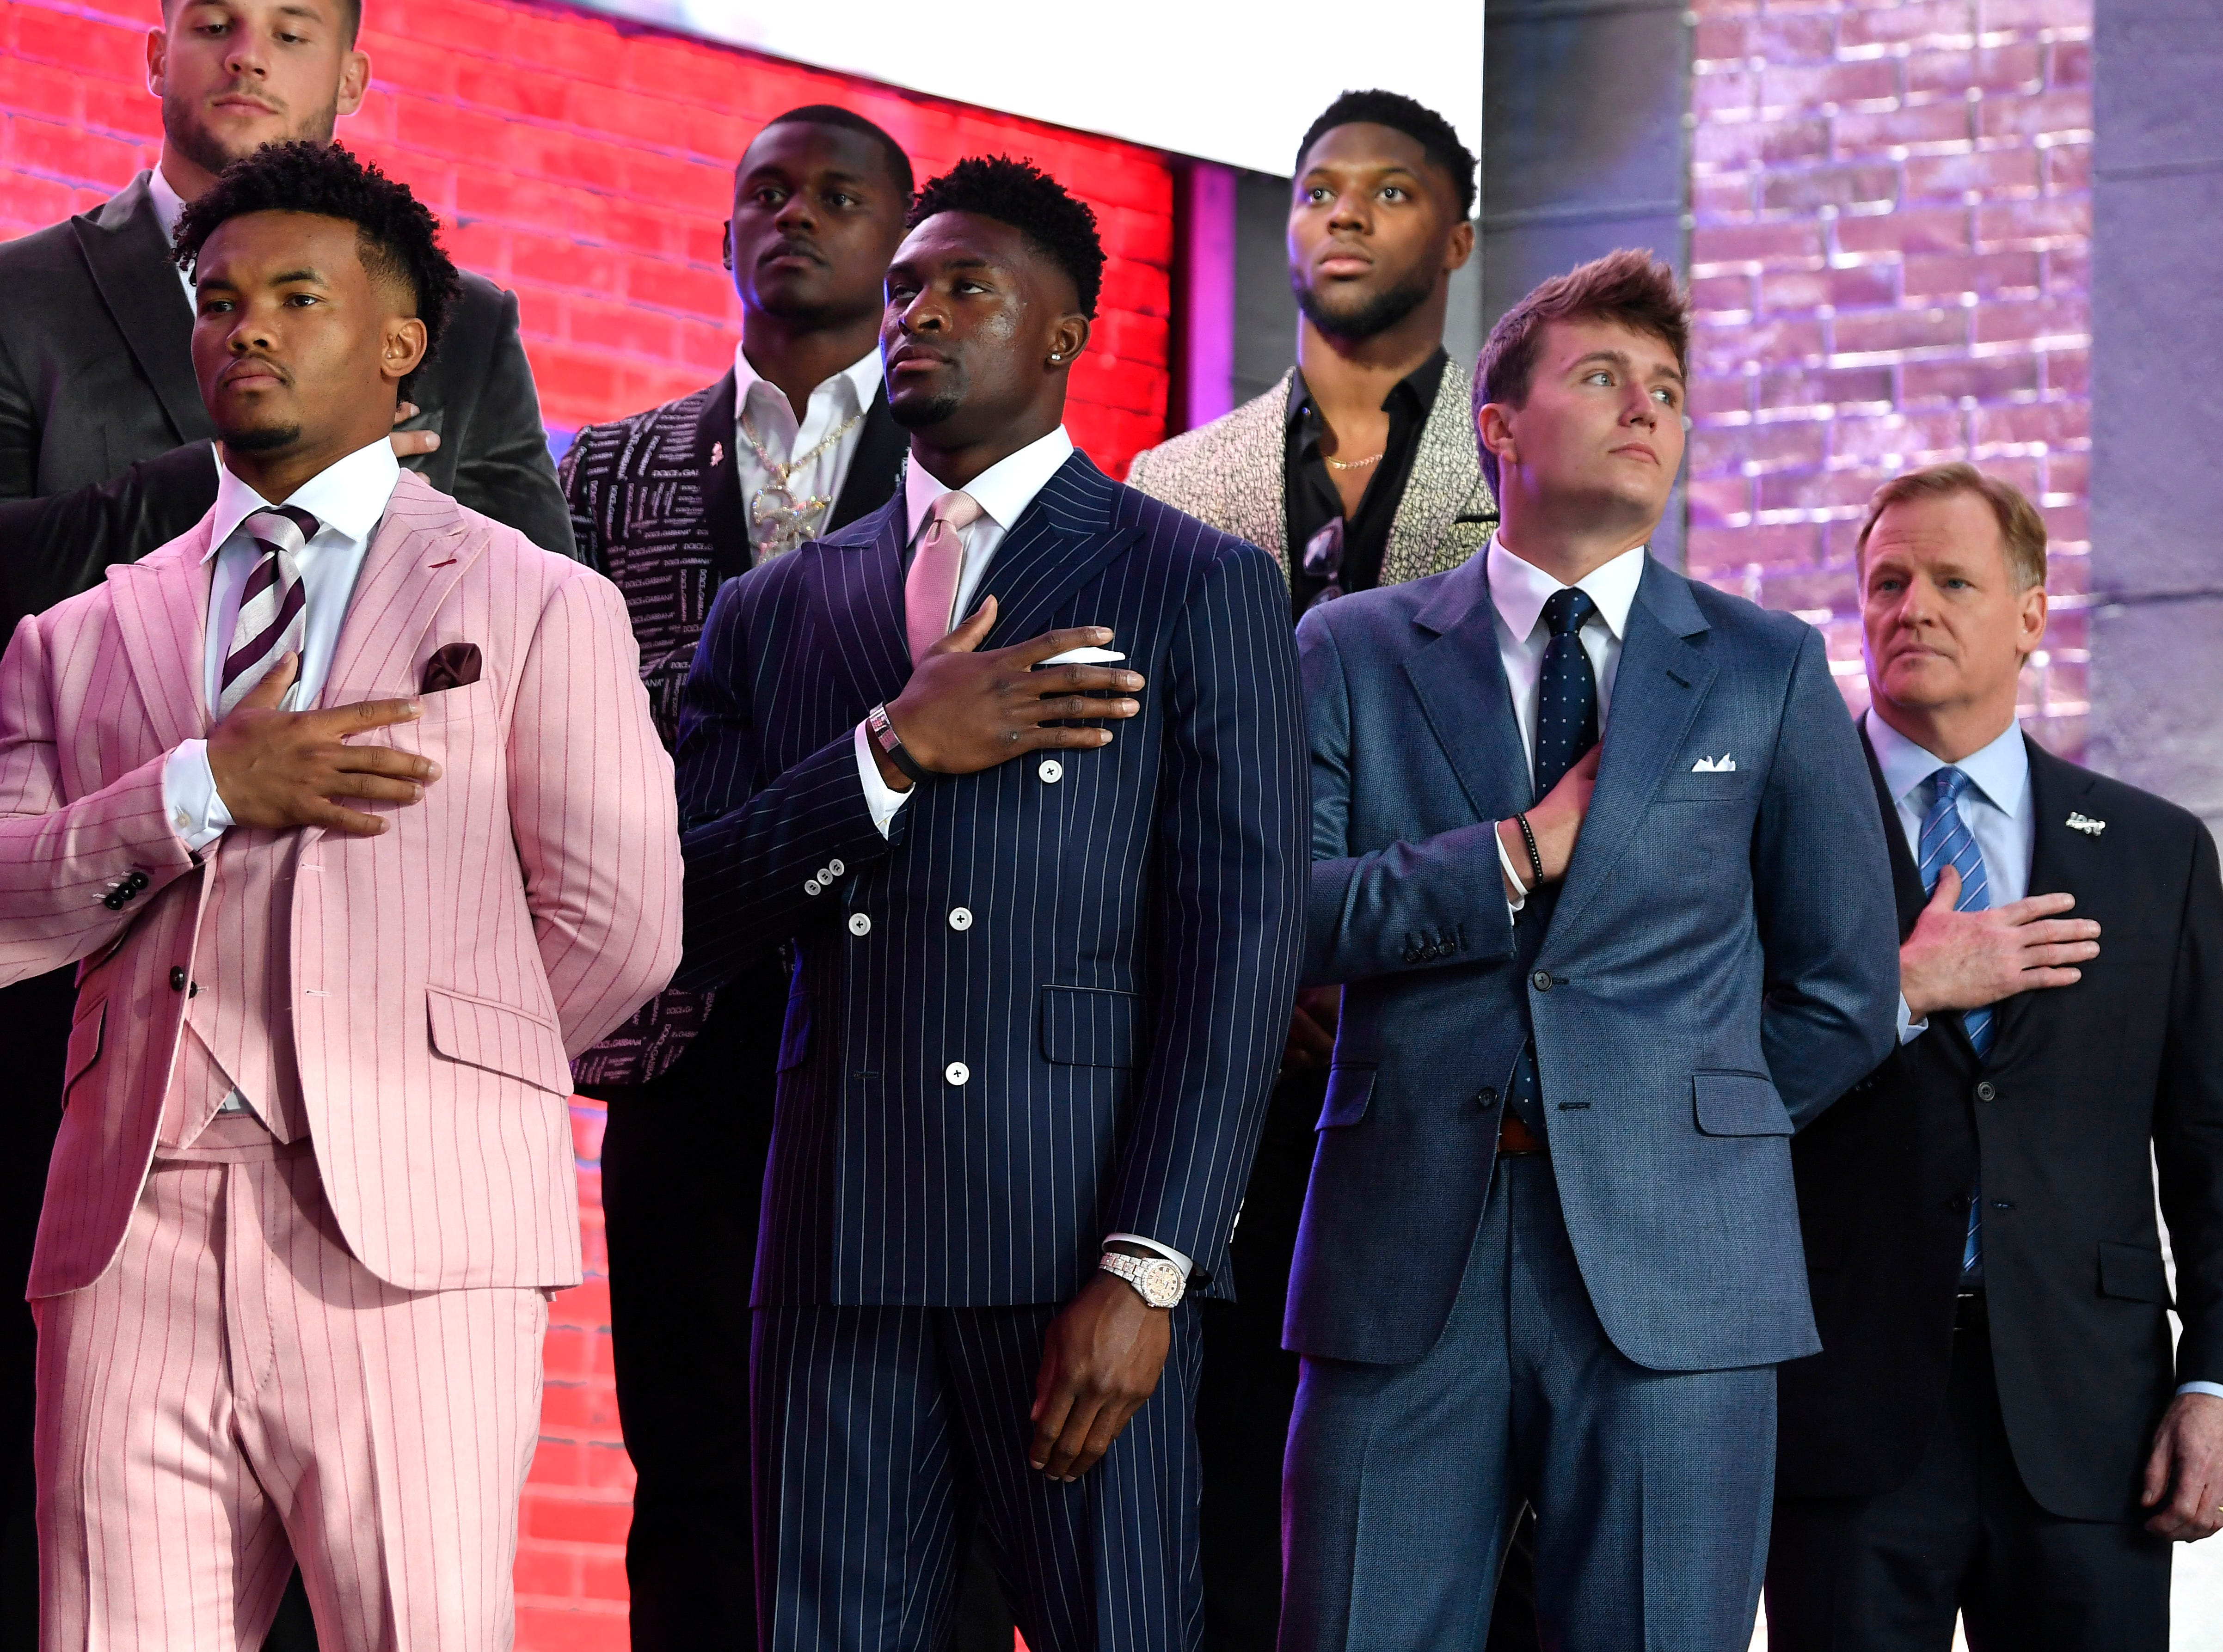 NFL Commissioner Roger Goodell and some of the draft prospects listen to the National Anthem at the start of the NFL Draft Thursday, April 25, 2019, in Nashville, Tenn.